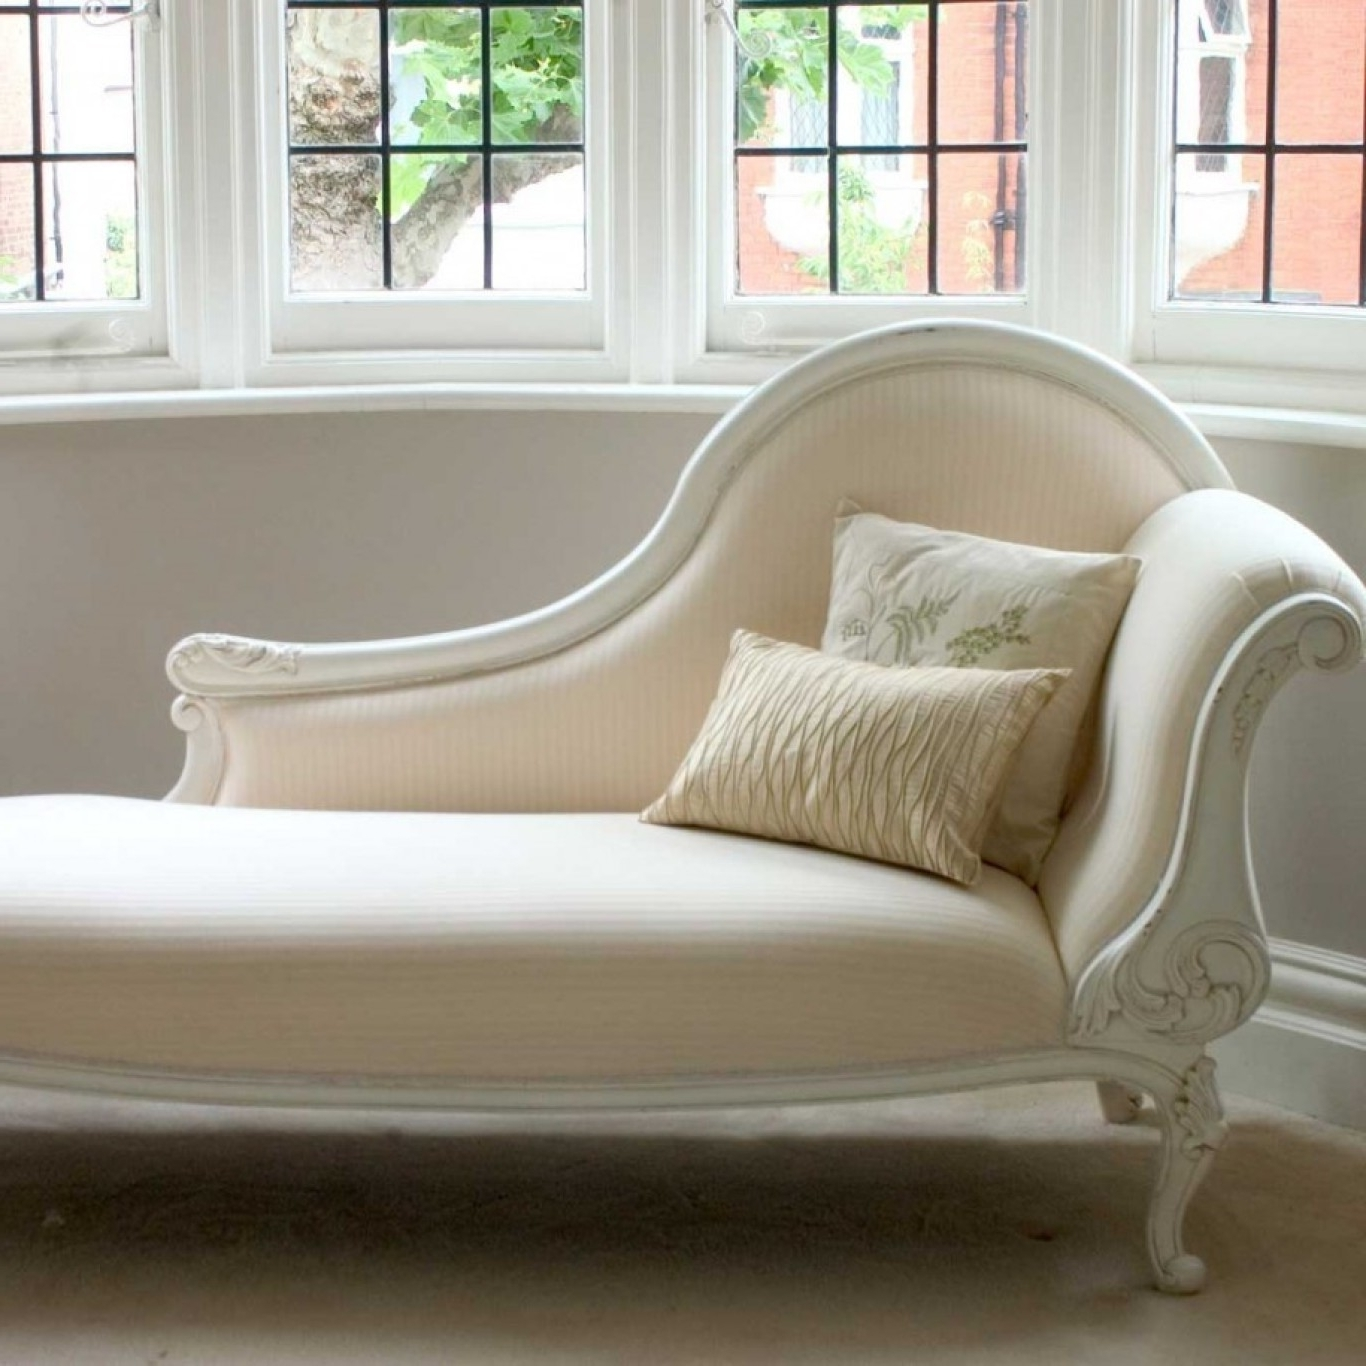 Favorite Bedroom Chaise Lounge Chairs For Chair For Bedroom (View 7 of 15)